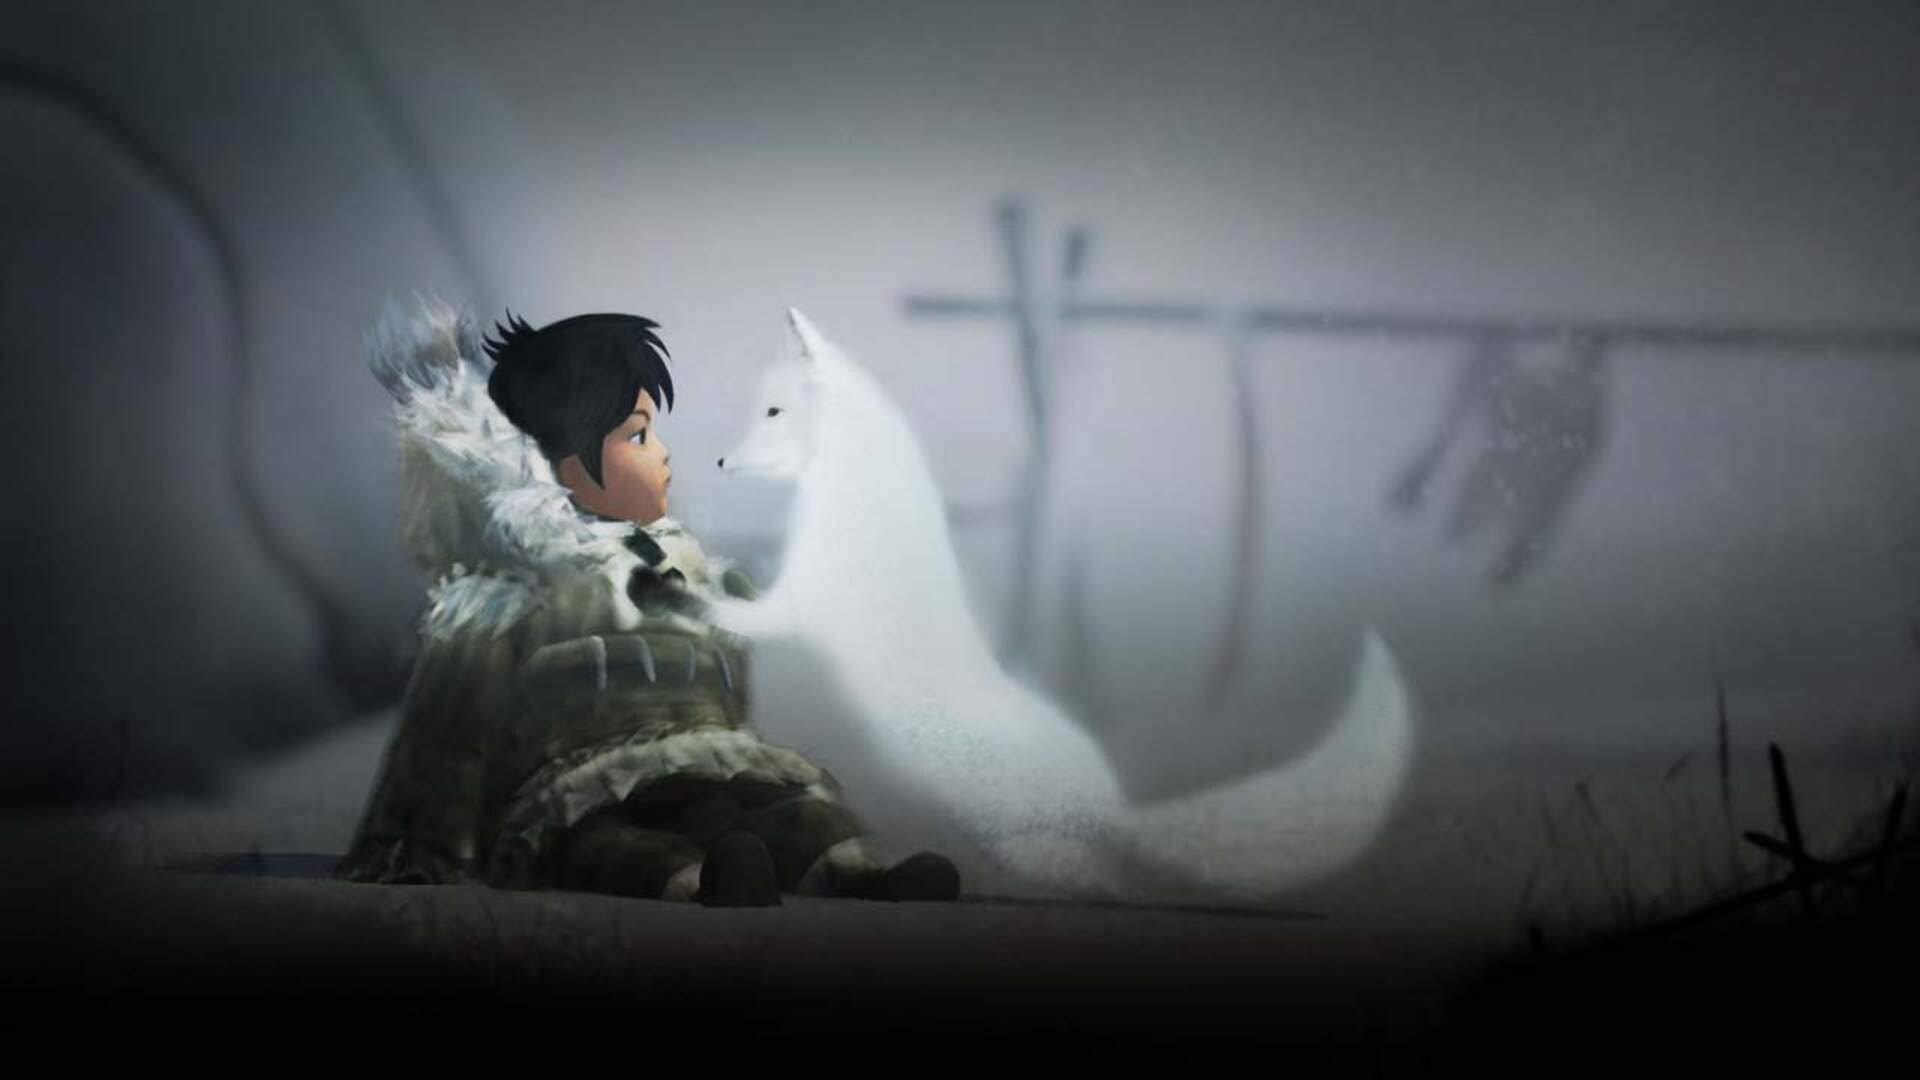 Never Alone, Dragon Age 2 Headline December's Xbox Games With Gold Lineup